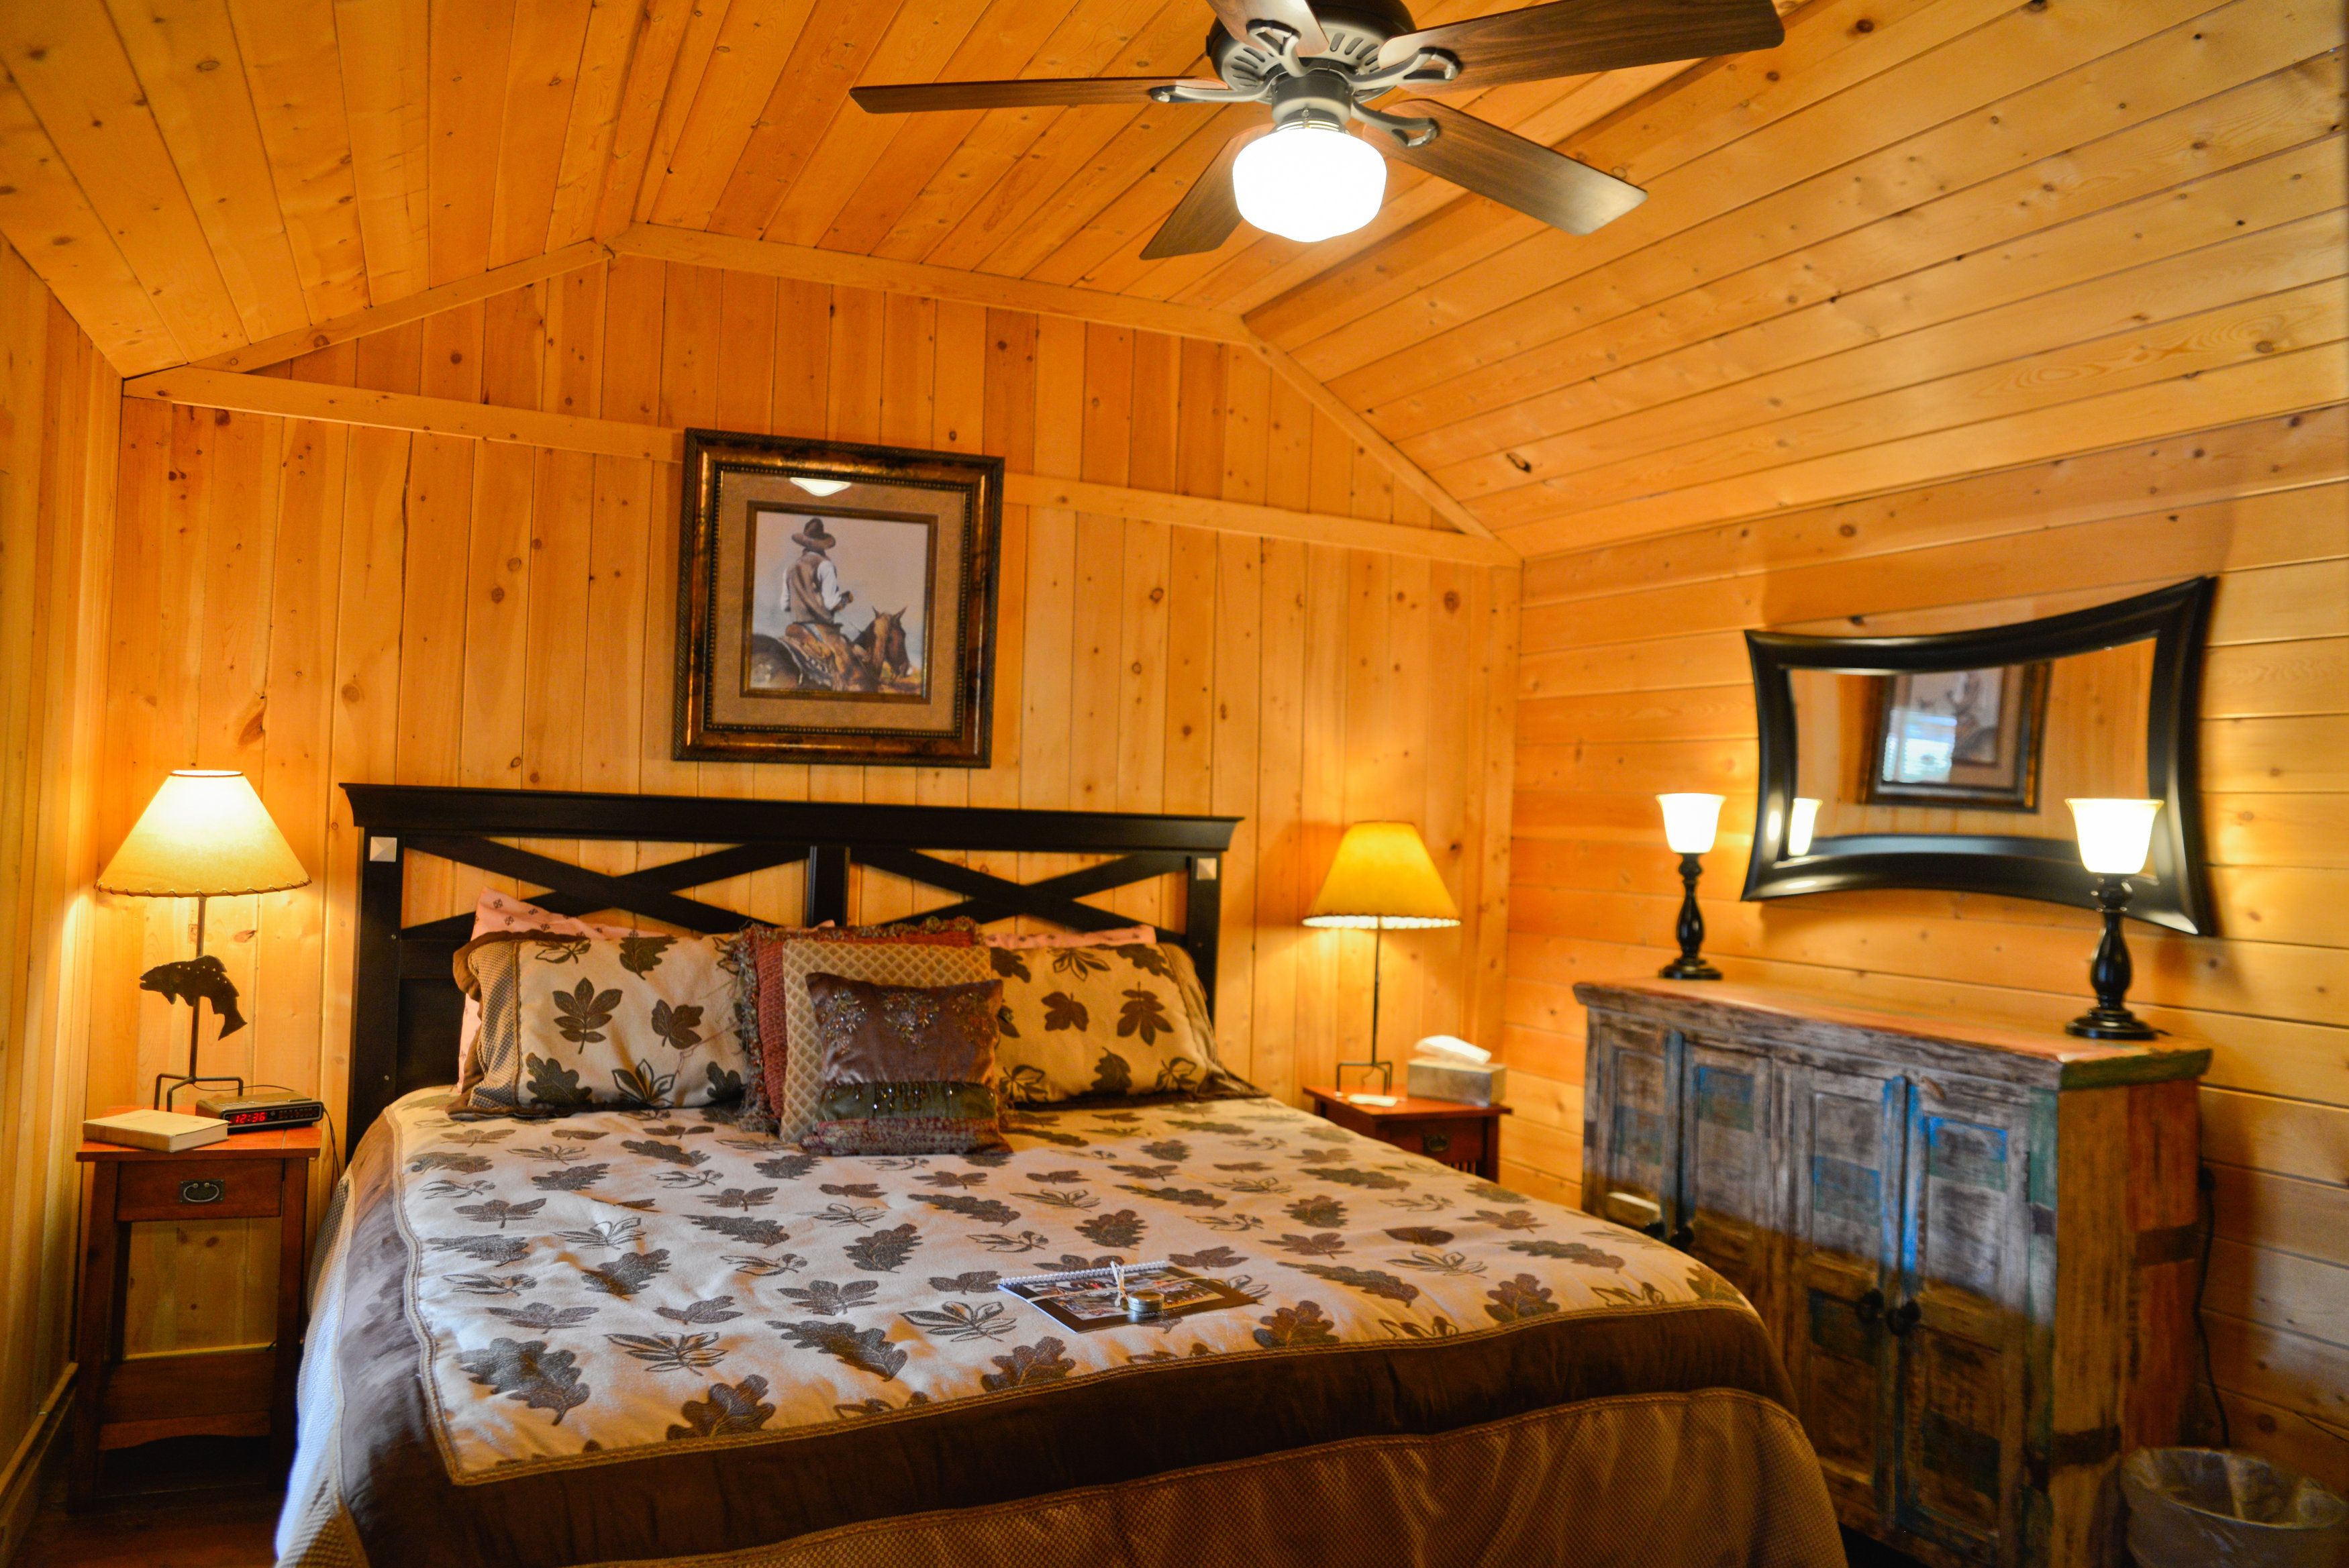 bedroom-interior-cherokee-park.jpg